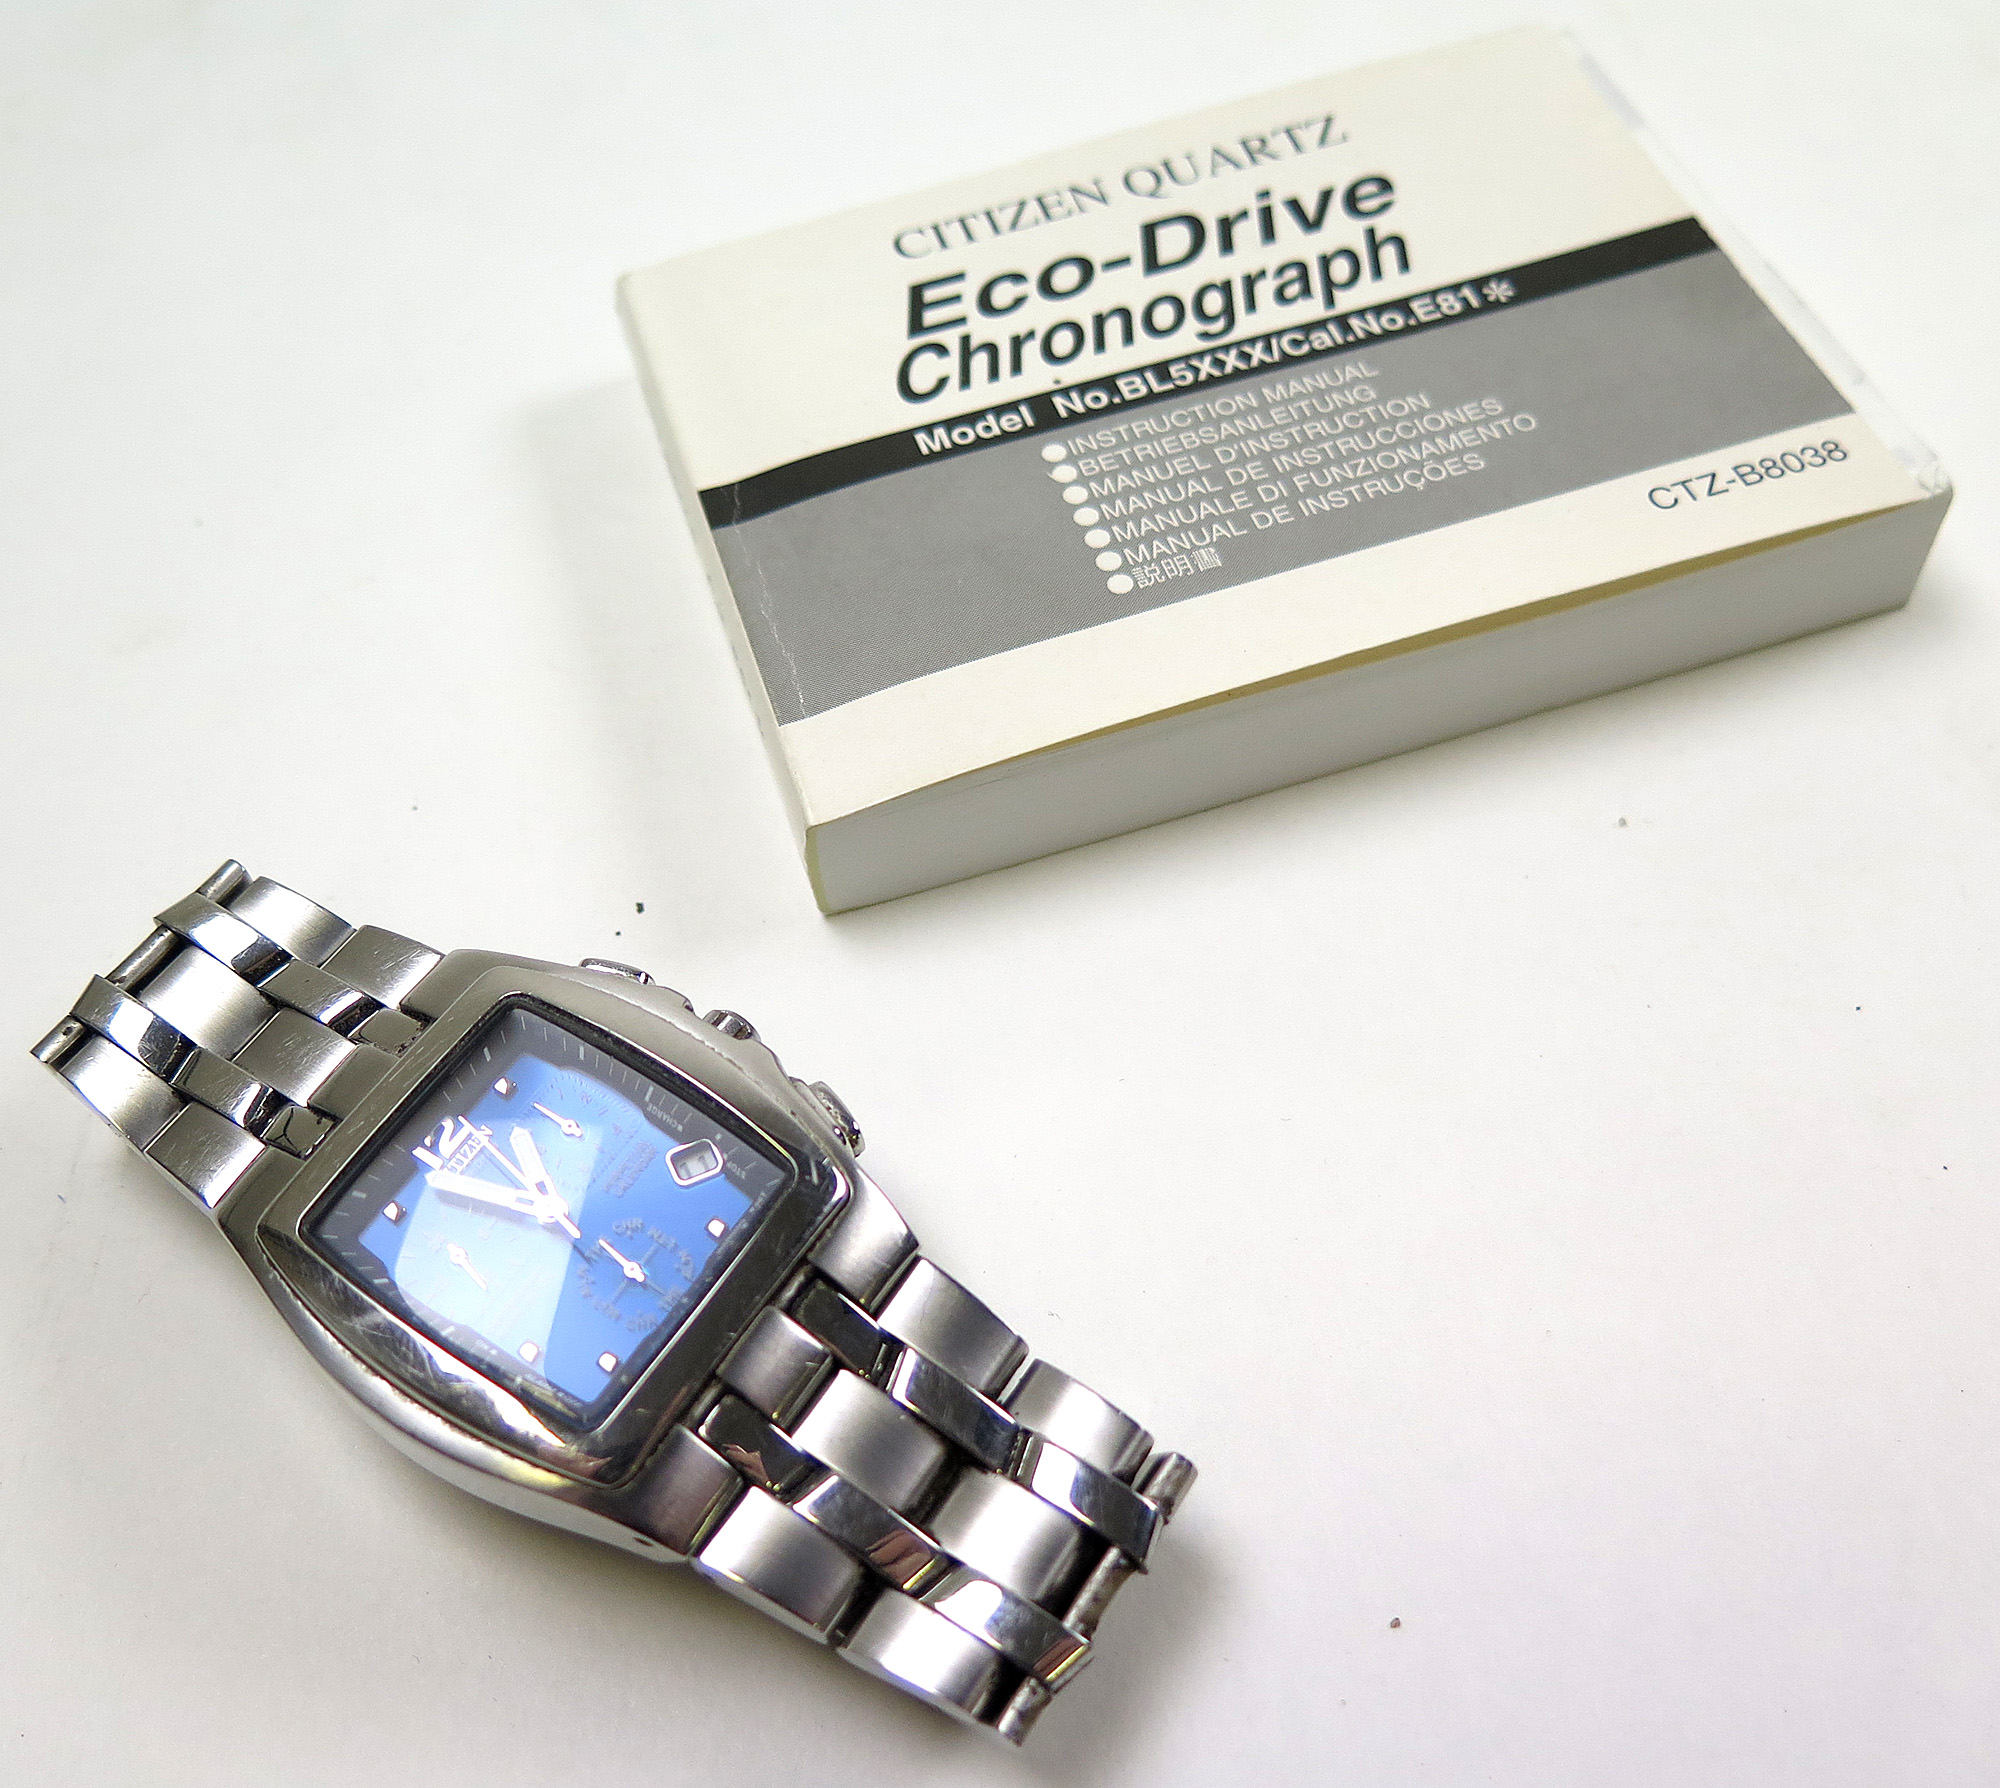 Citizen Eco Drive Chronograph Wr100 Gents Wristwatch, The with regard to Citizen Eco Drive Chronograph Wr100 Manual